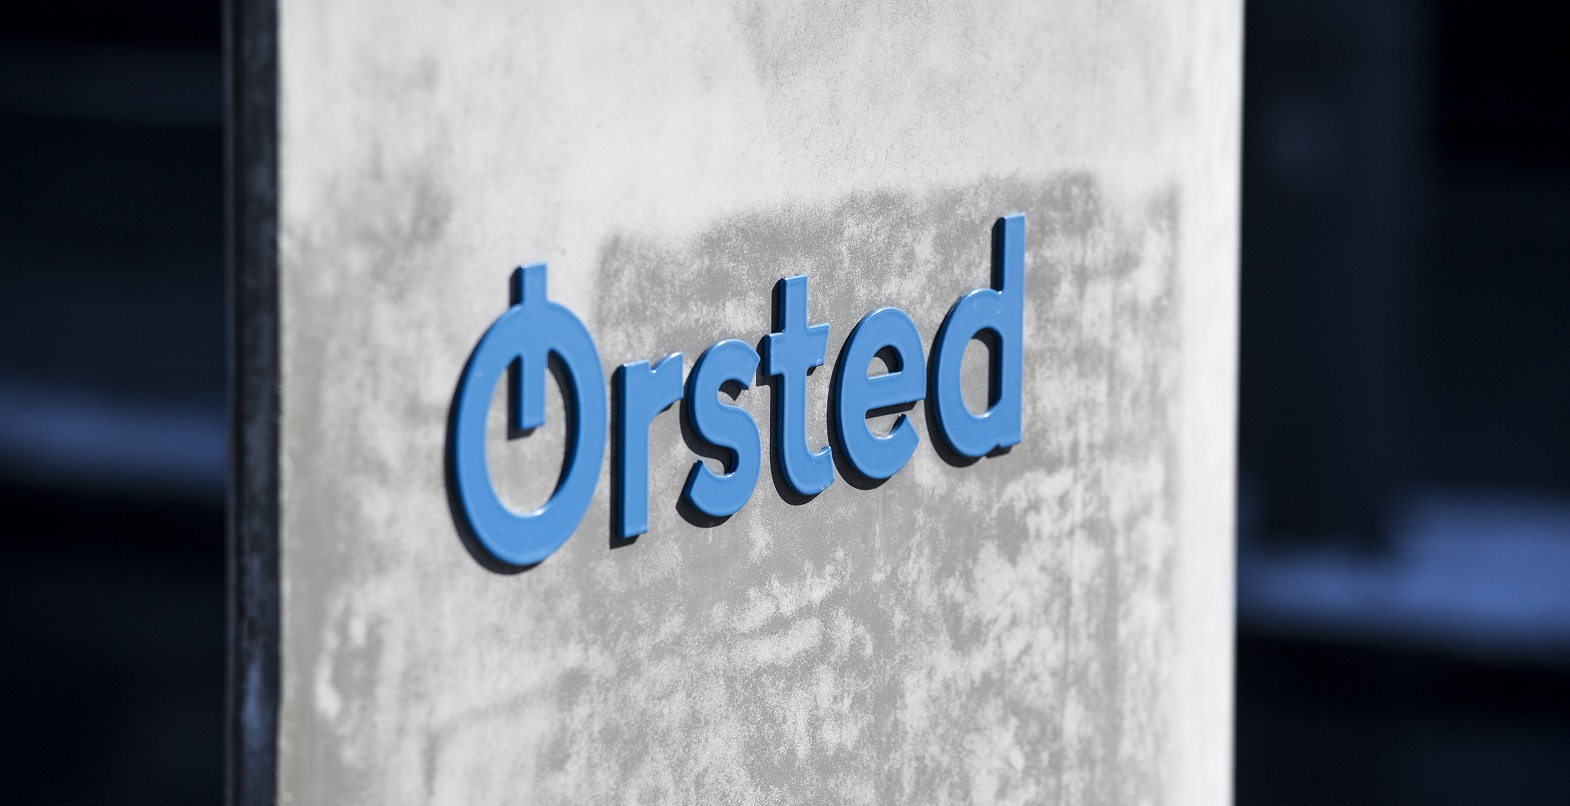 Denmark's Ørsted buys US solar-plus-storage specialist